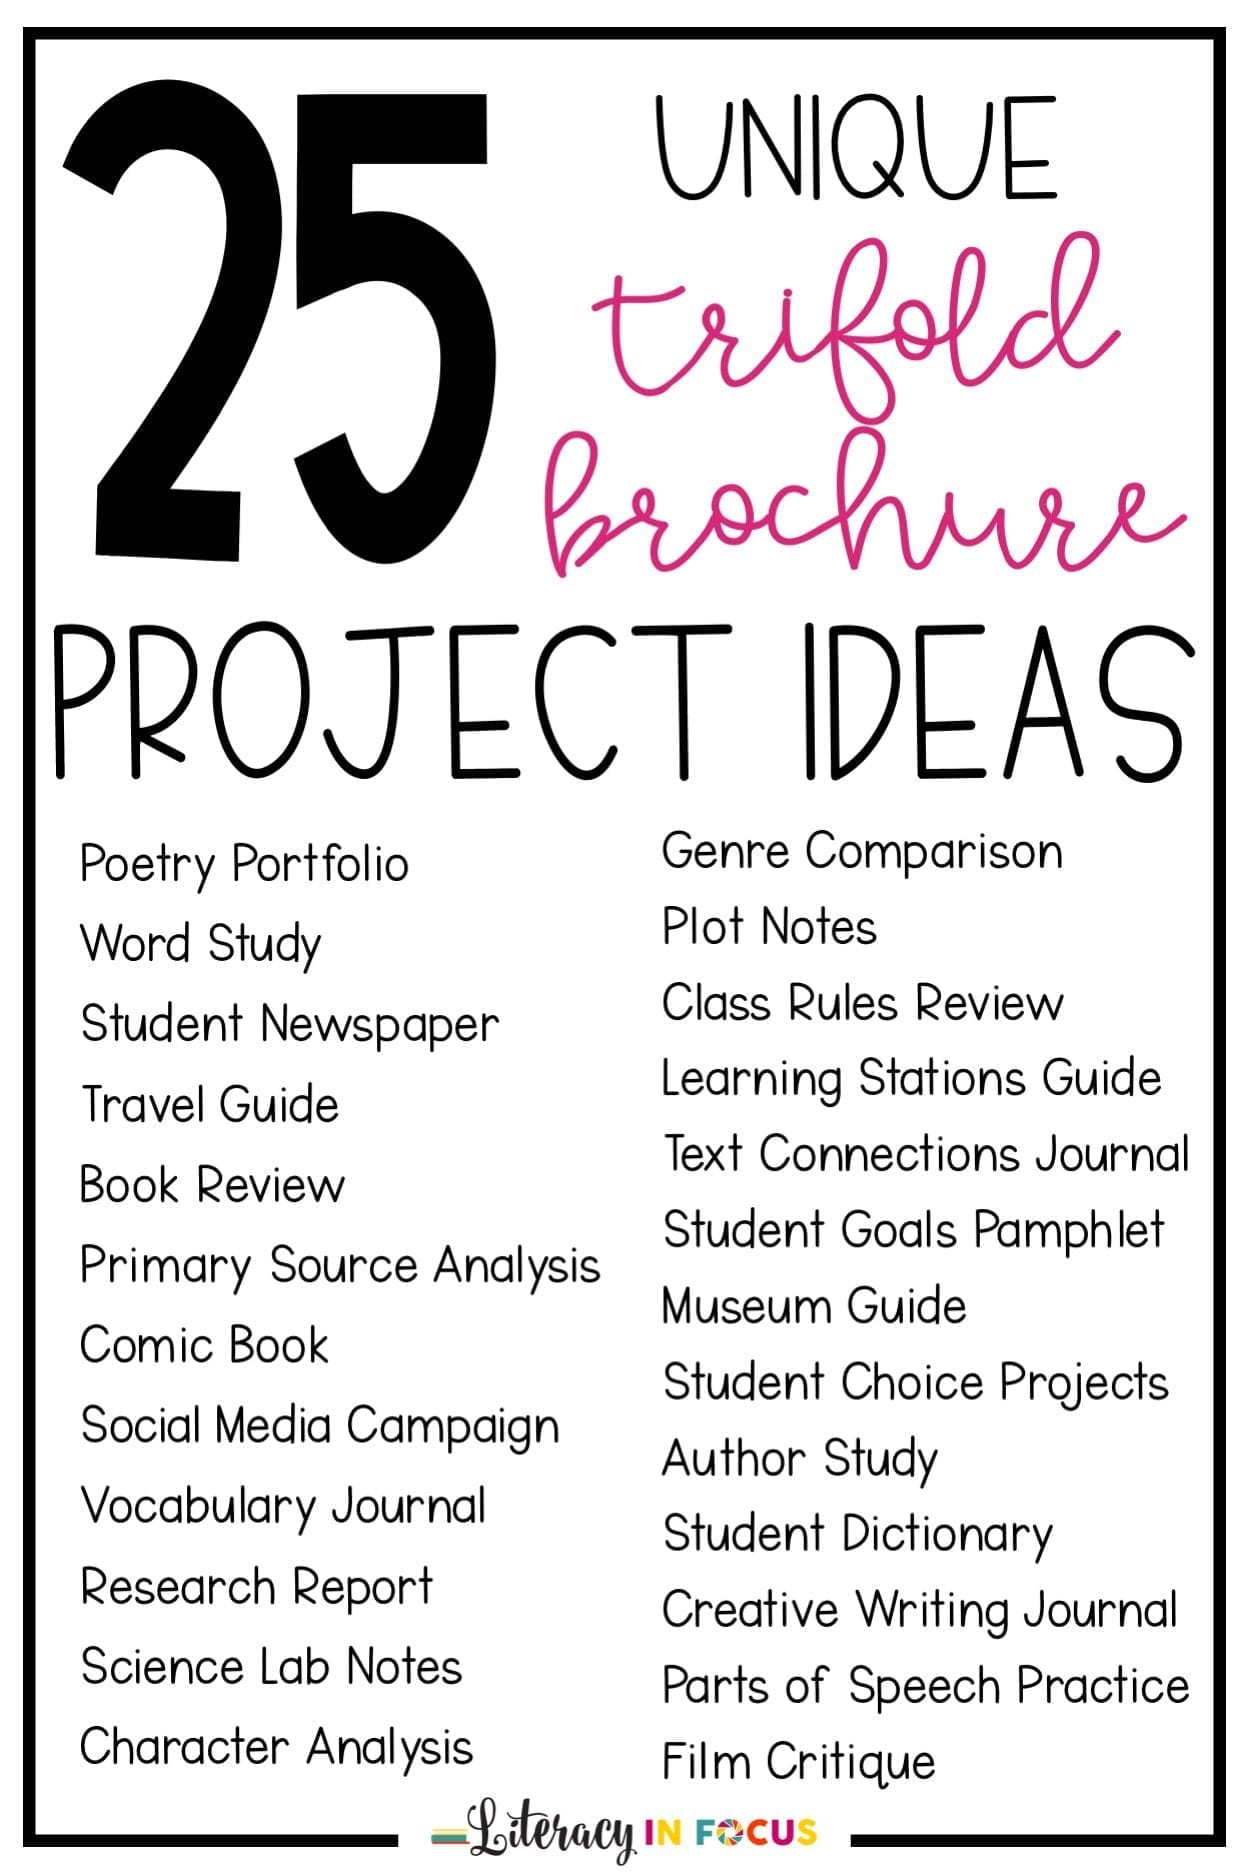 25 trifold brochure project ideas